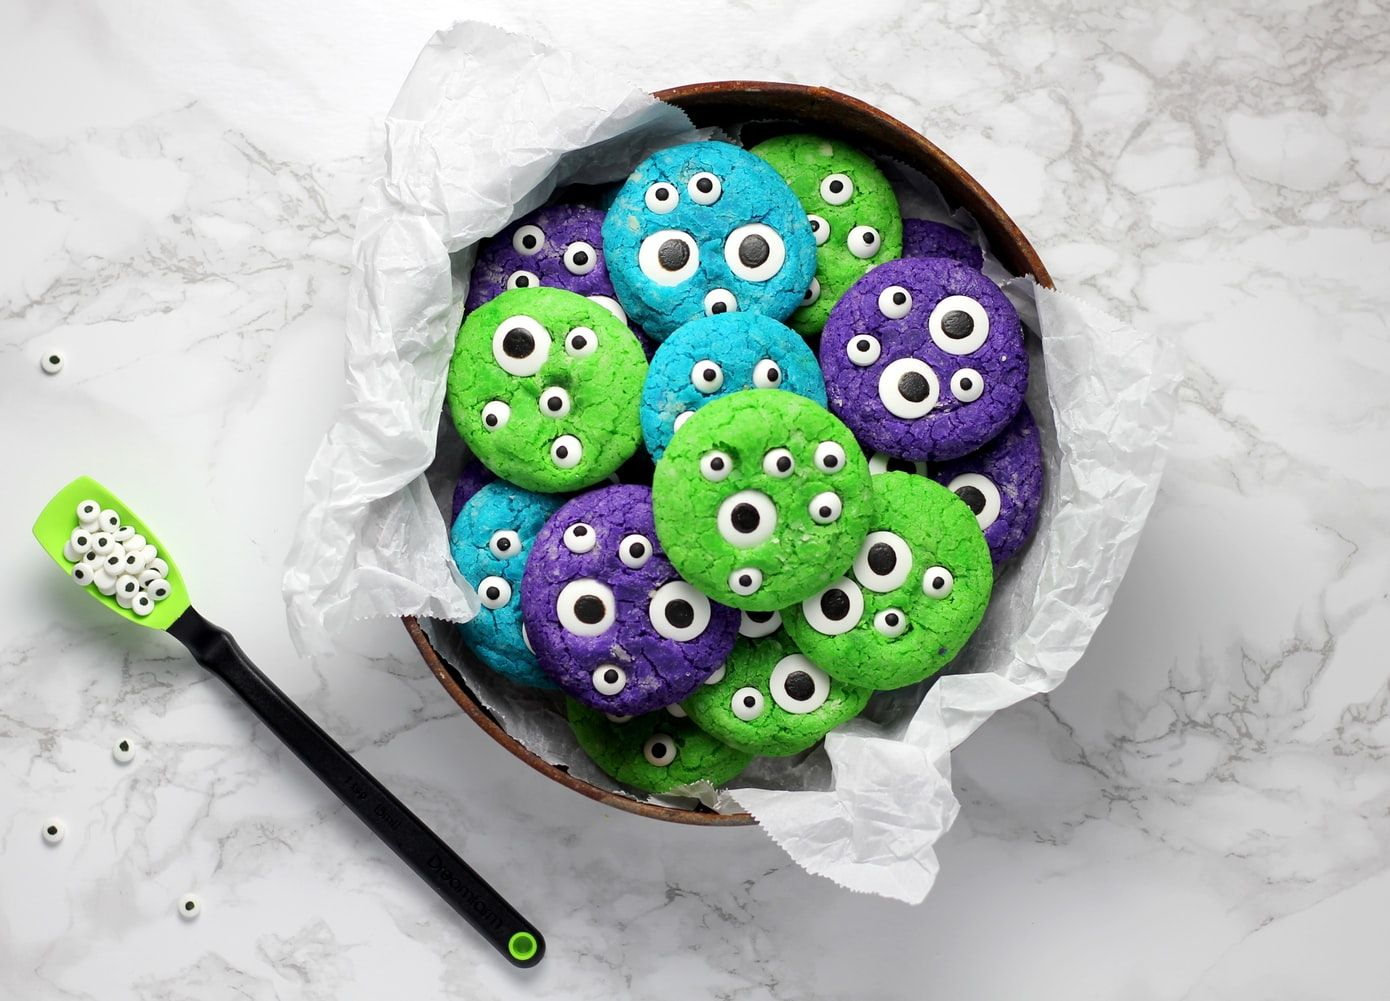 Eyeball biscuits